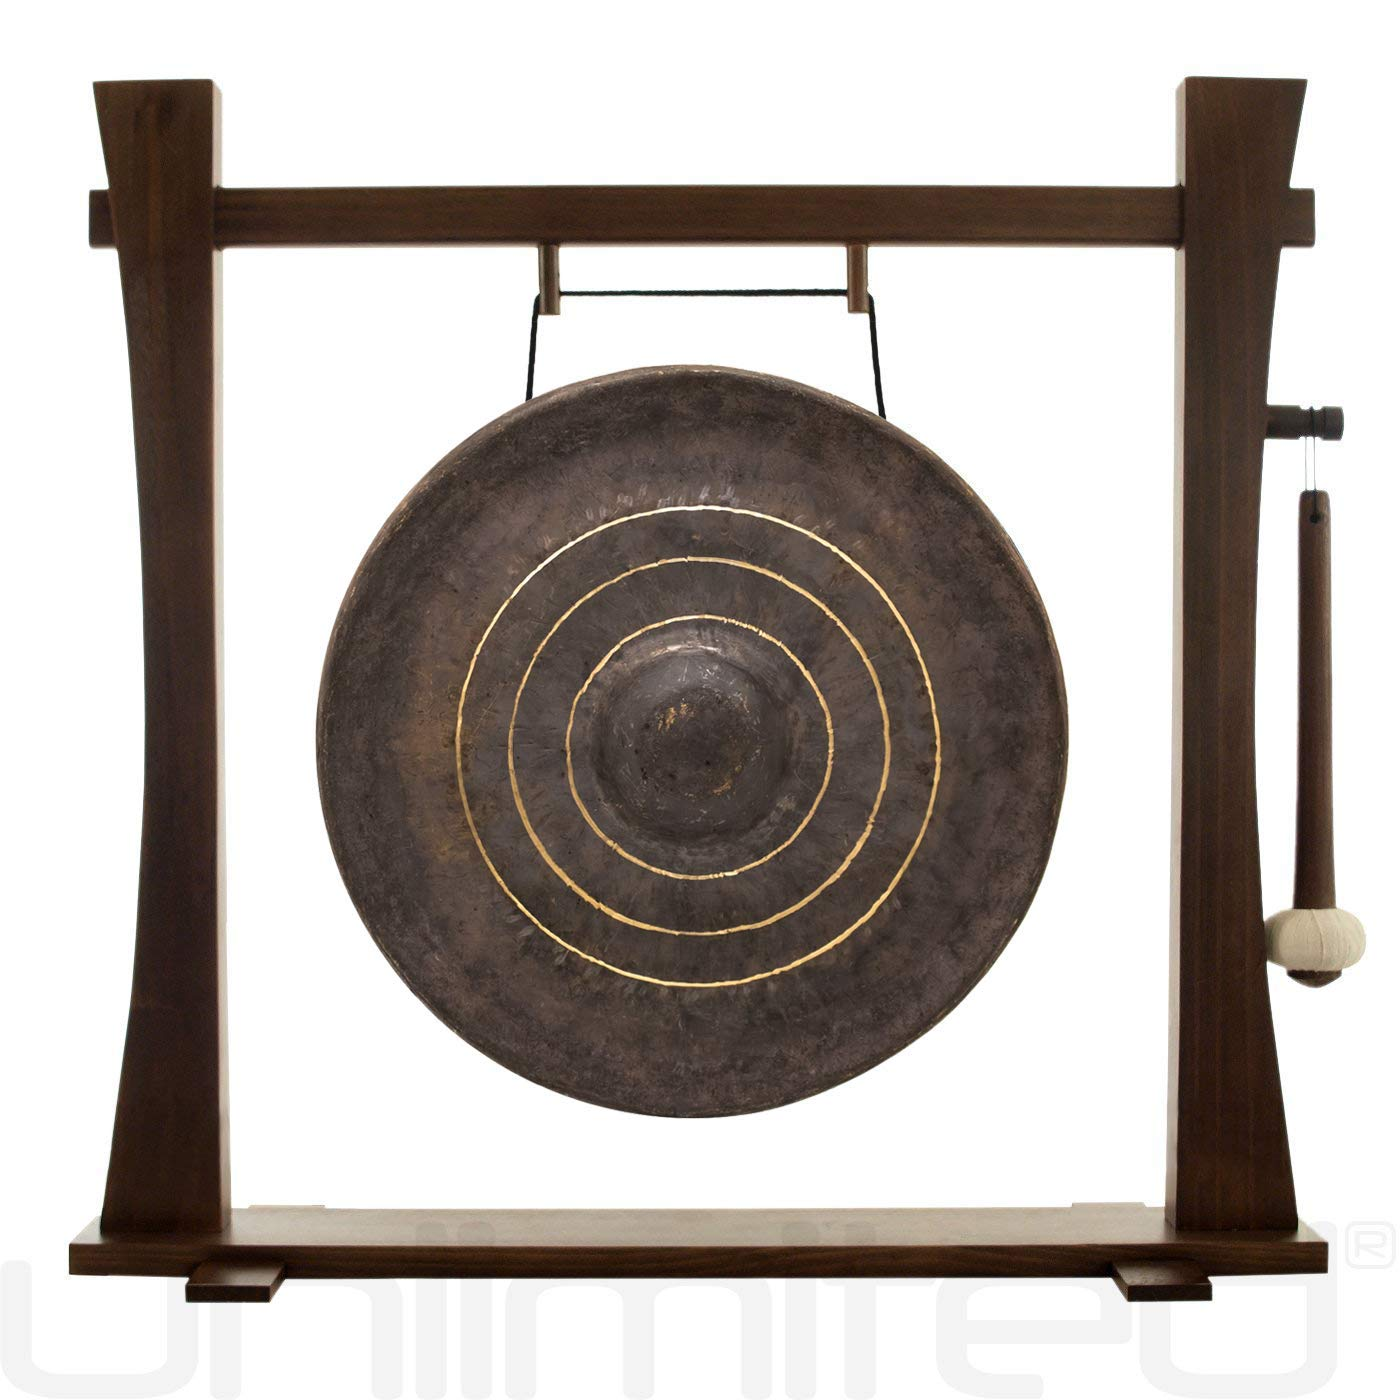 16'' to 18'' Gongs on the Spirit Guide Gong Stand by Unlimited